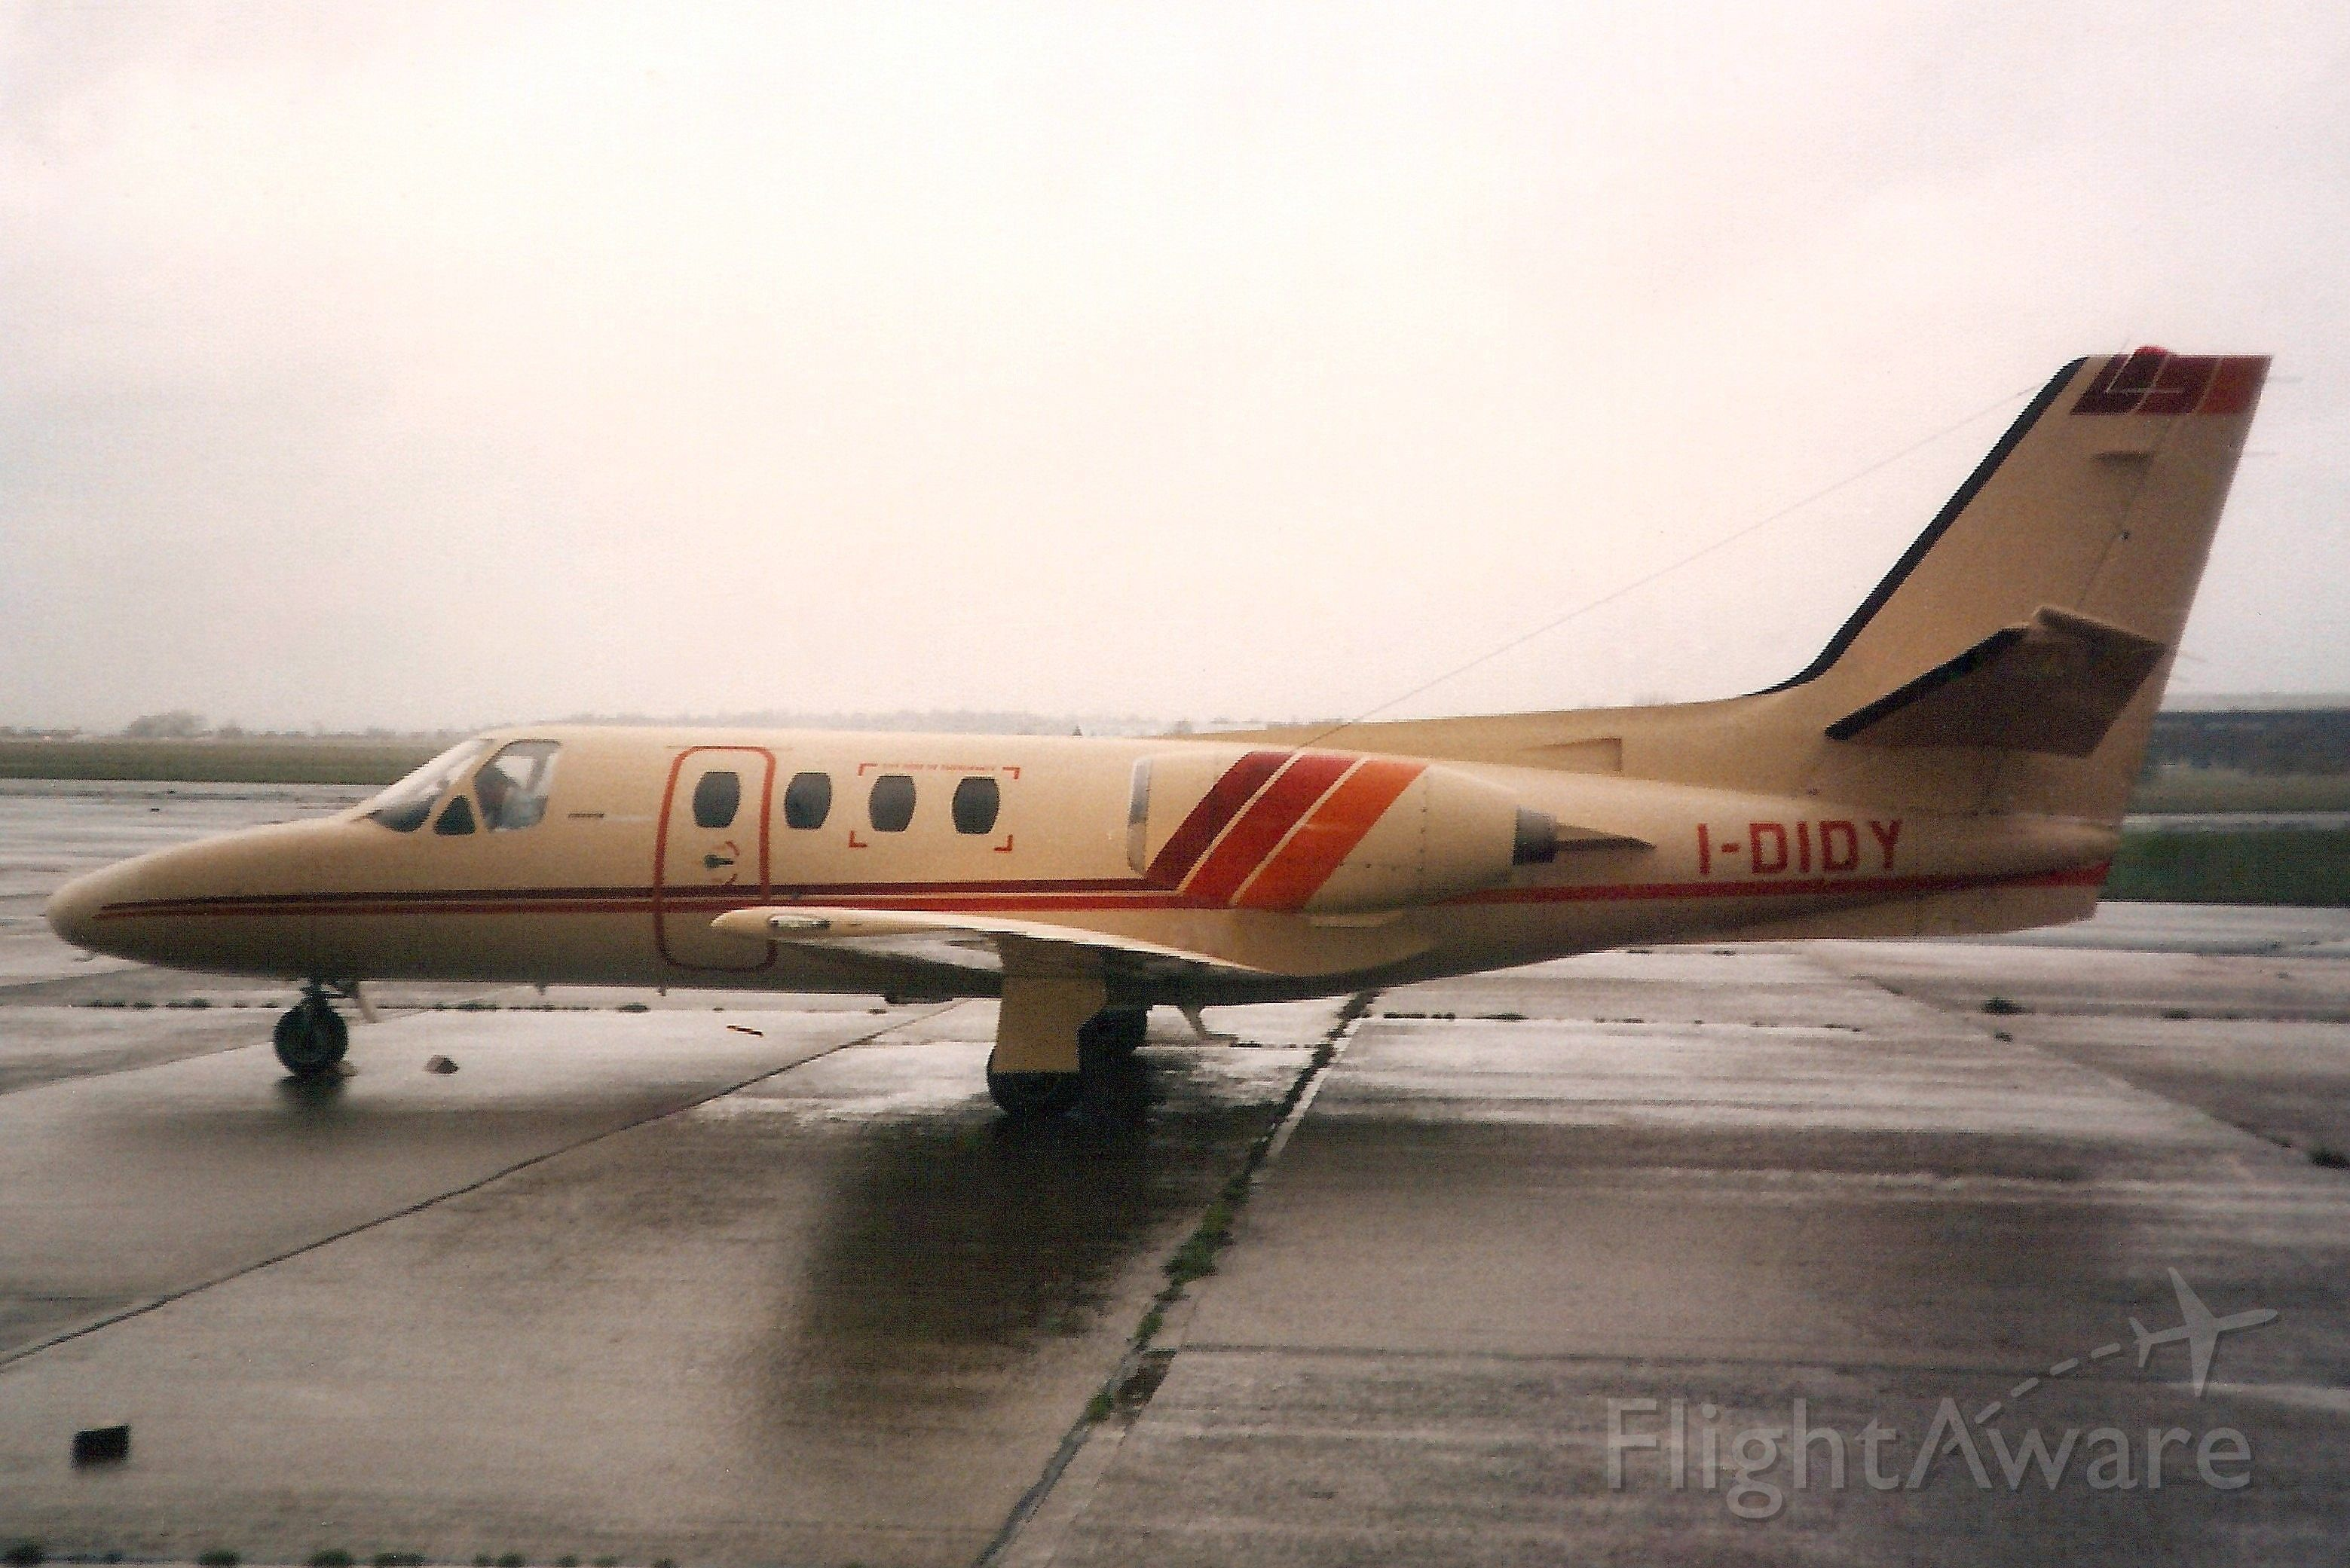 Cessna Citation 1SP (I-DIDY) - Seen here in Nov-89.br /br /Reregistered N249AS in Feb-96,br /then N851BC in Apr-97,br /then XA-OAC in Jun-99,br /then N40MA 6-Jun-01,br /then N117MA 13-Mar-02.